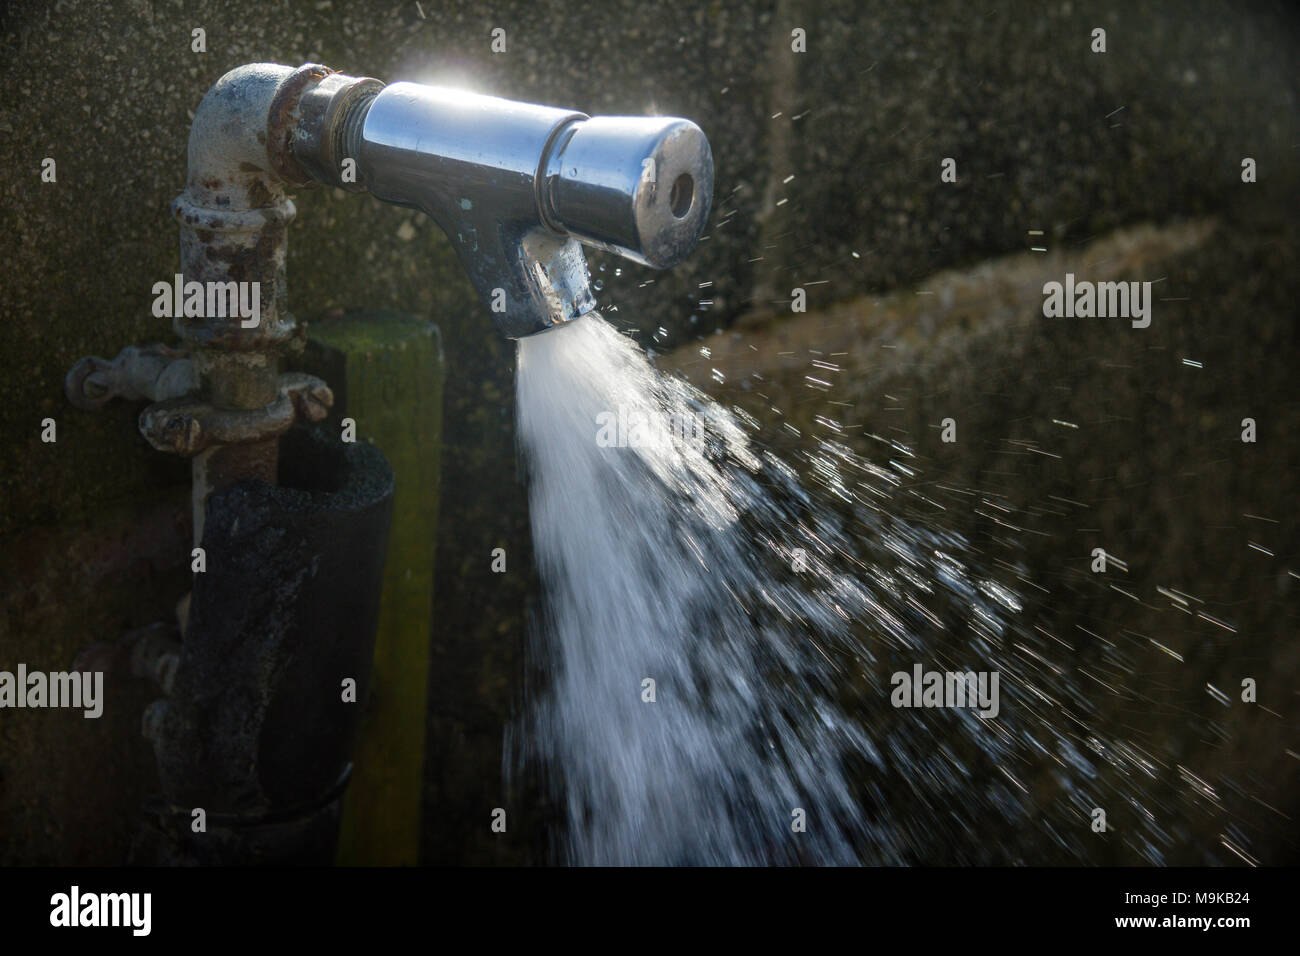 Outdoor Water Tap Stock Photos & Outdoor Water Tap Stock Images - Alamy